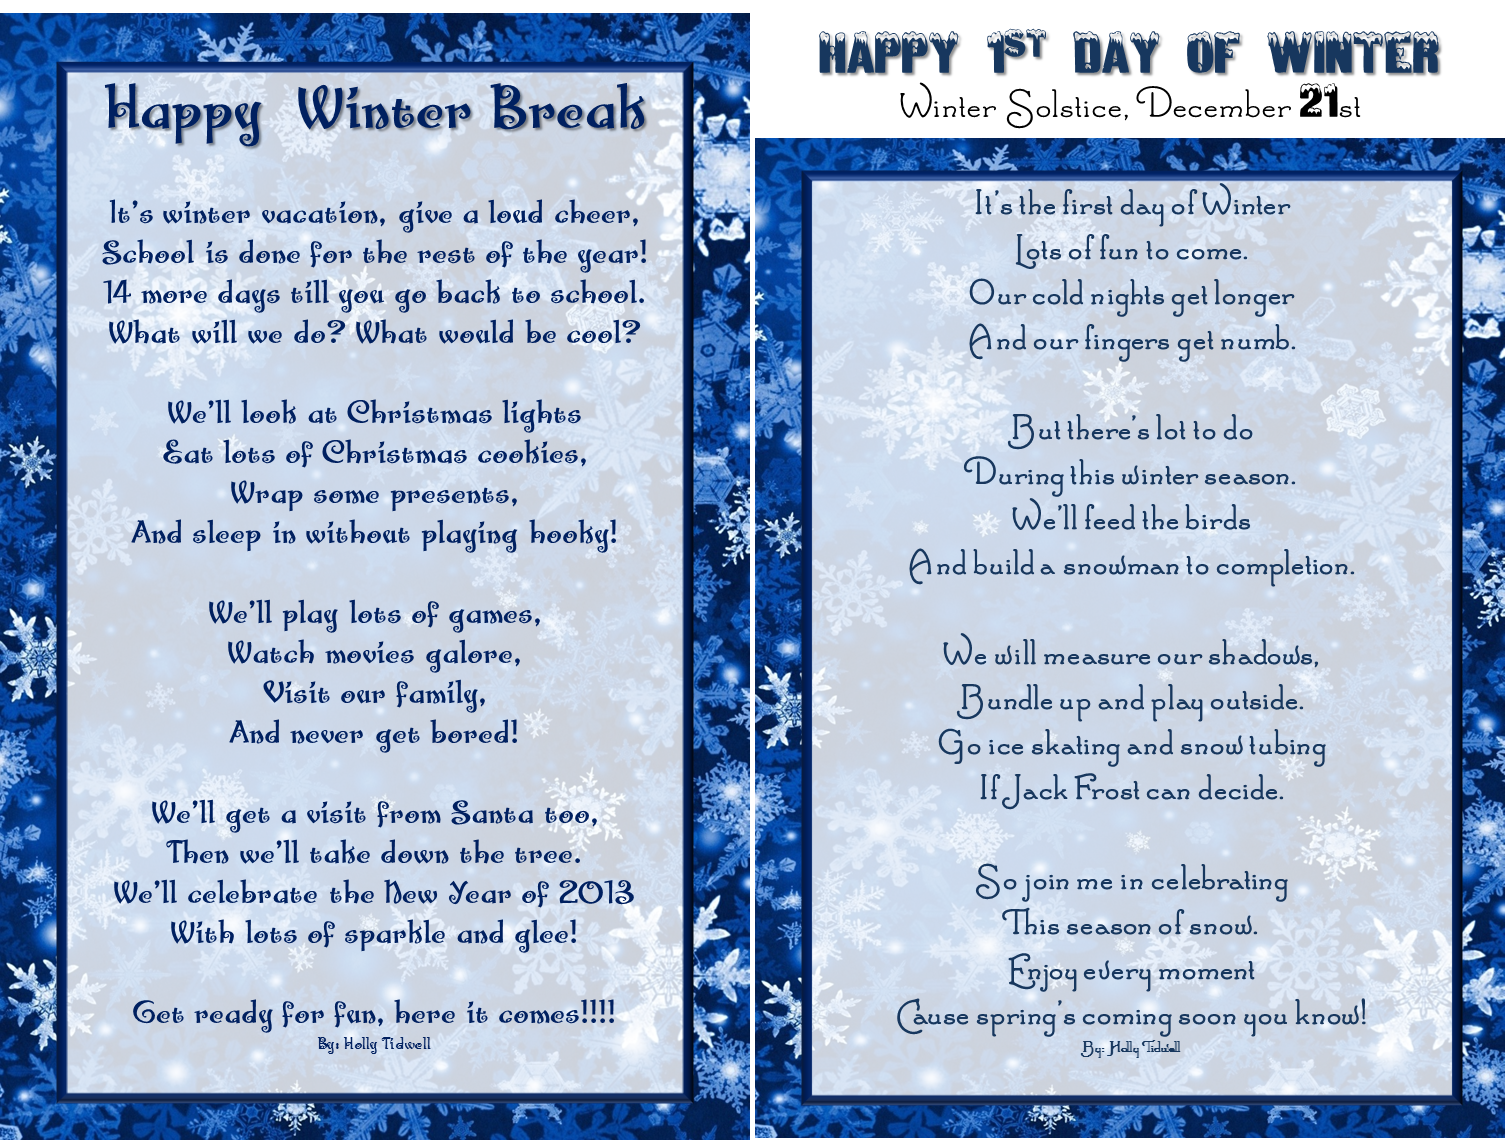 winter break vacation poem for kids st day of winter solstice winter break vacation poem for kids 1st day of winter solstice poem for